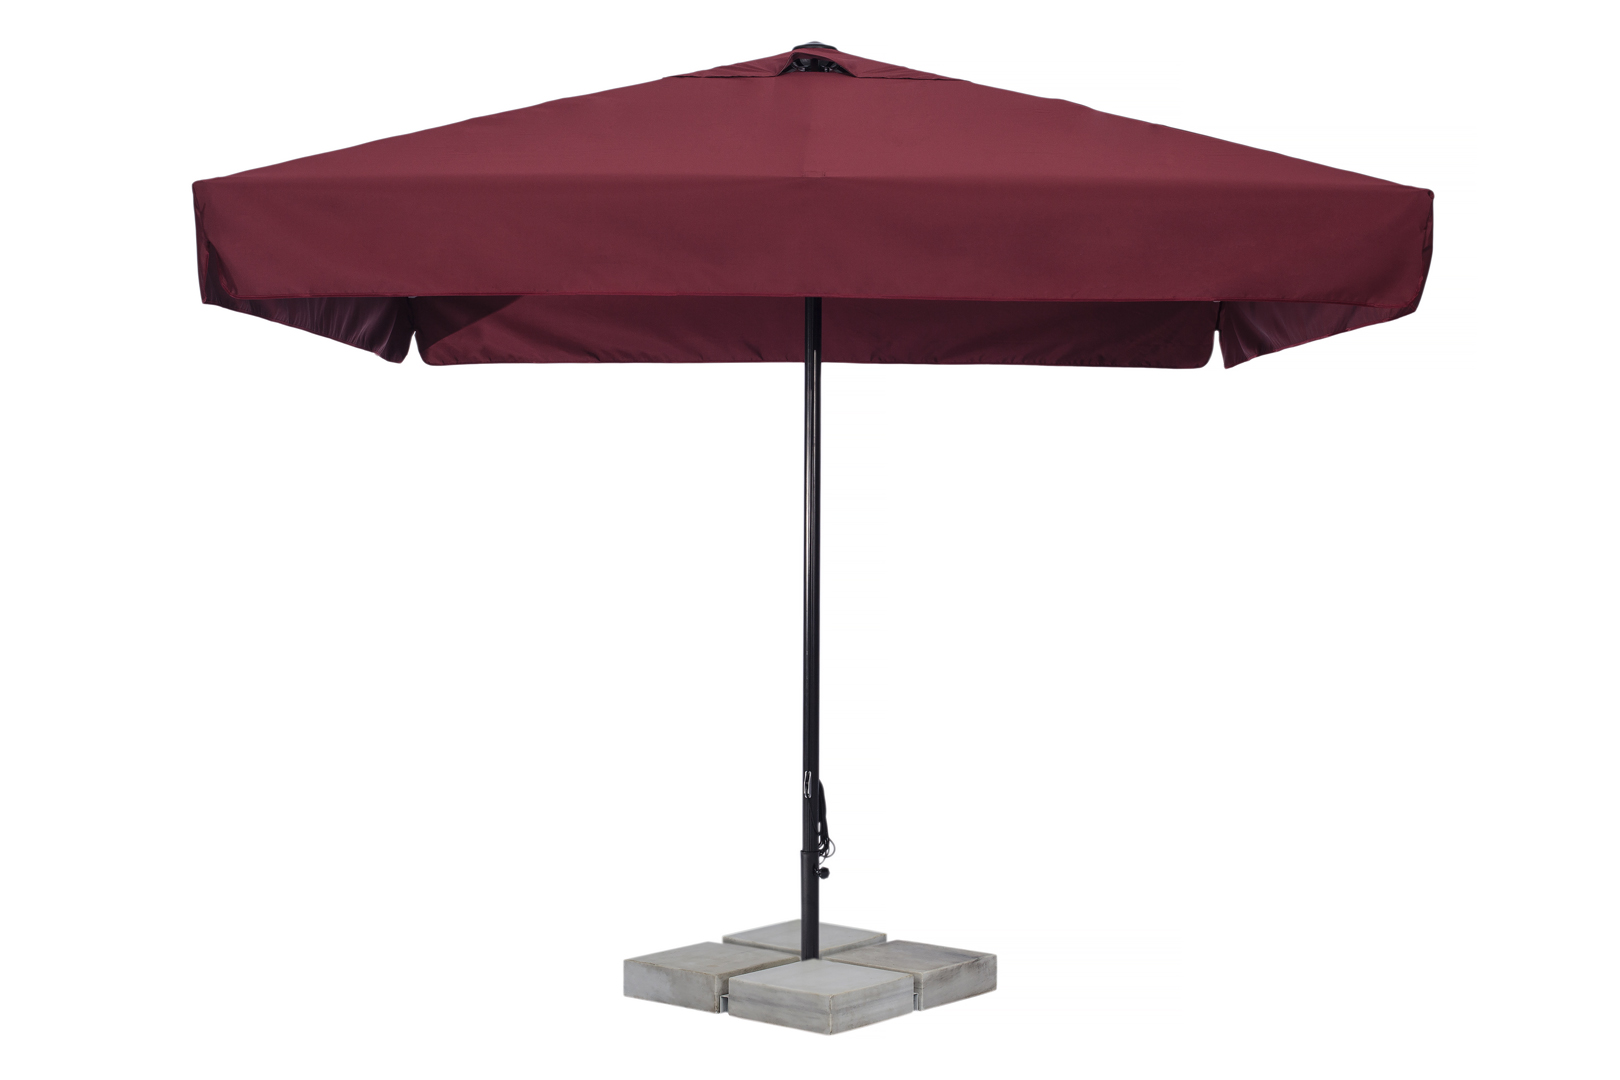 Product picture of CASTLE - PULLEY / ROPE SYSTEM PARASOL